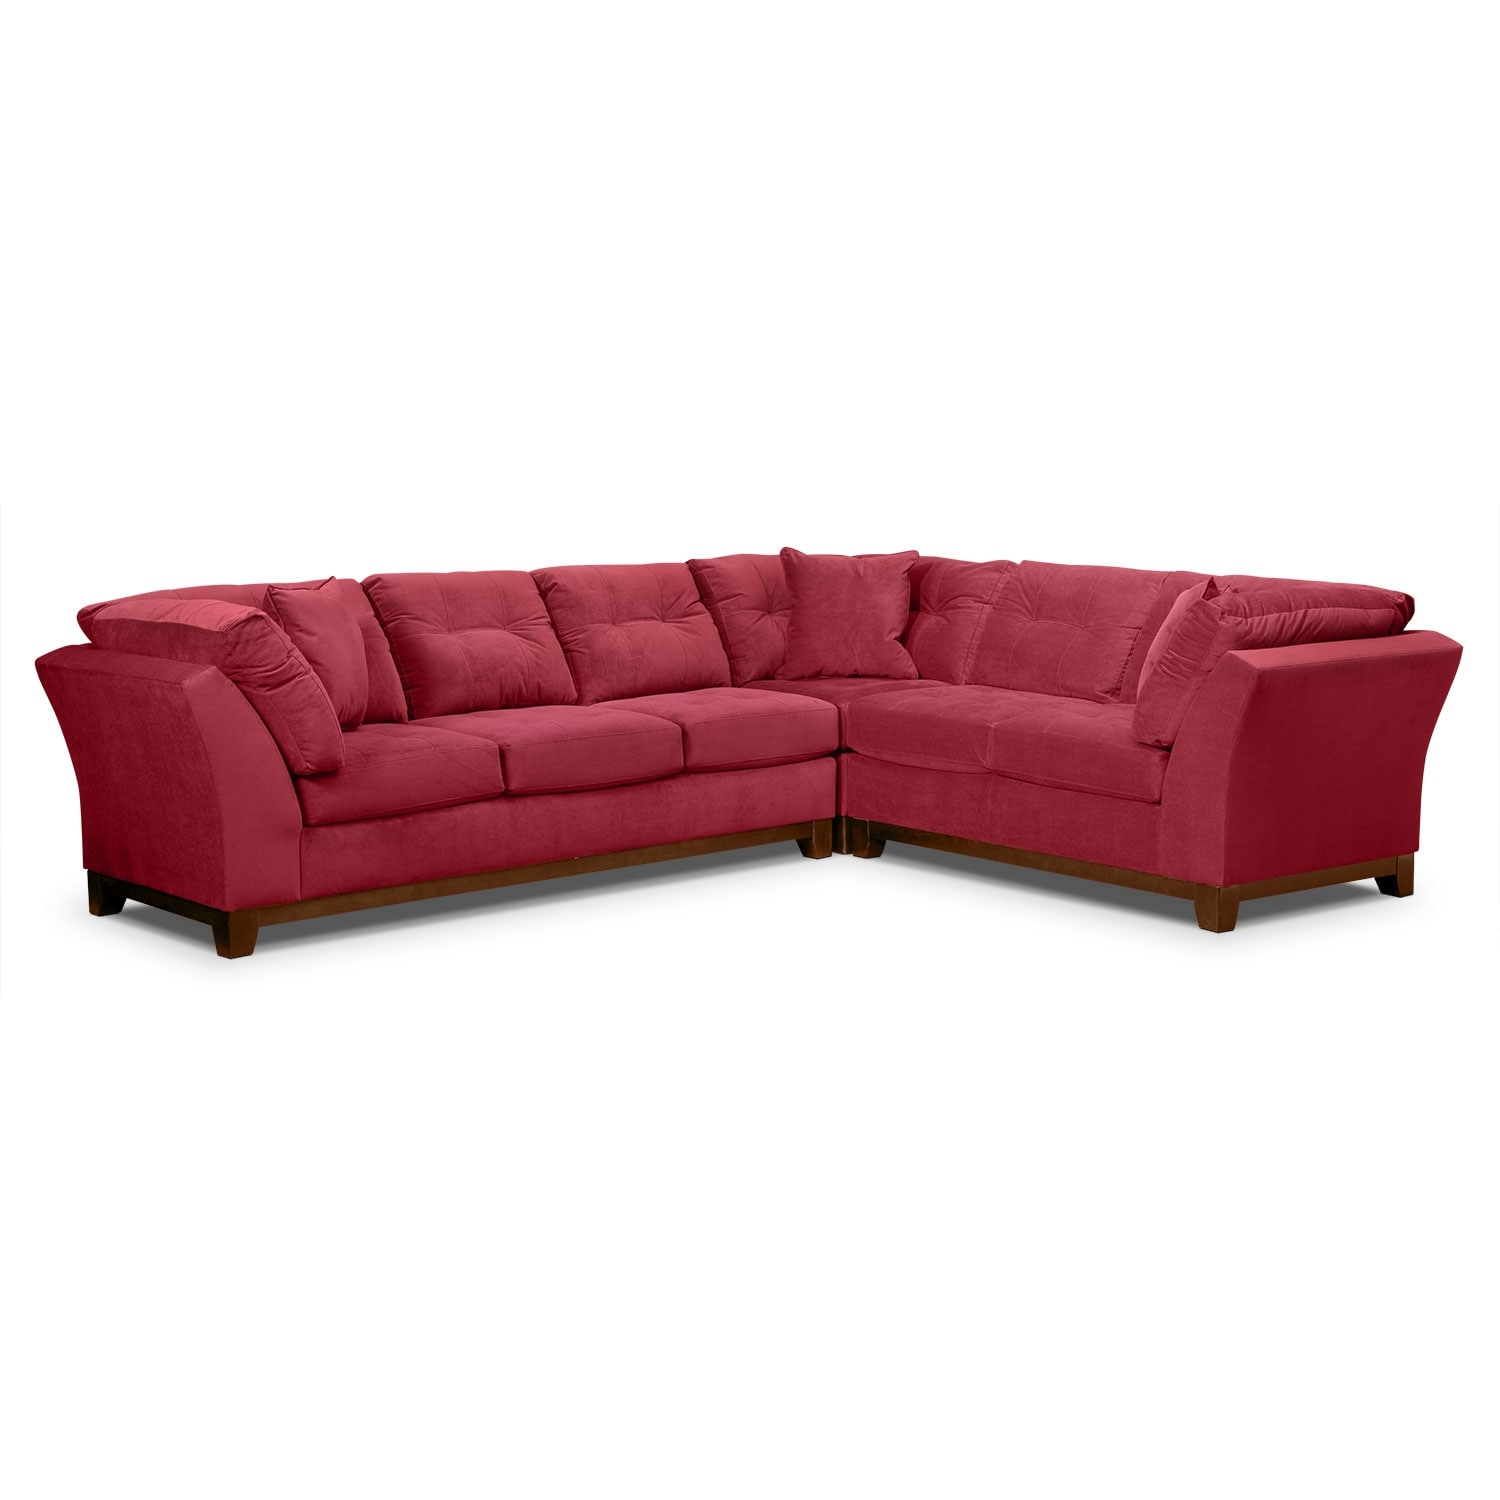 Living Room Furniture - Solace 3-Piece Left-Facing Sofa Sectional - Poppy